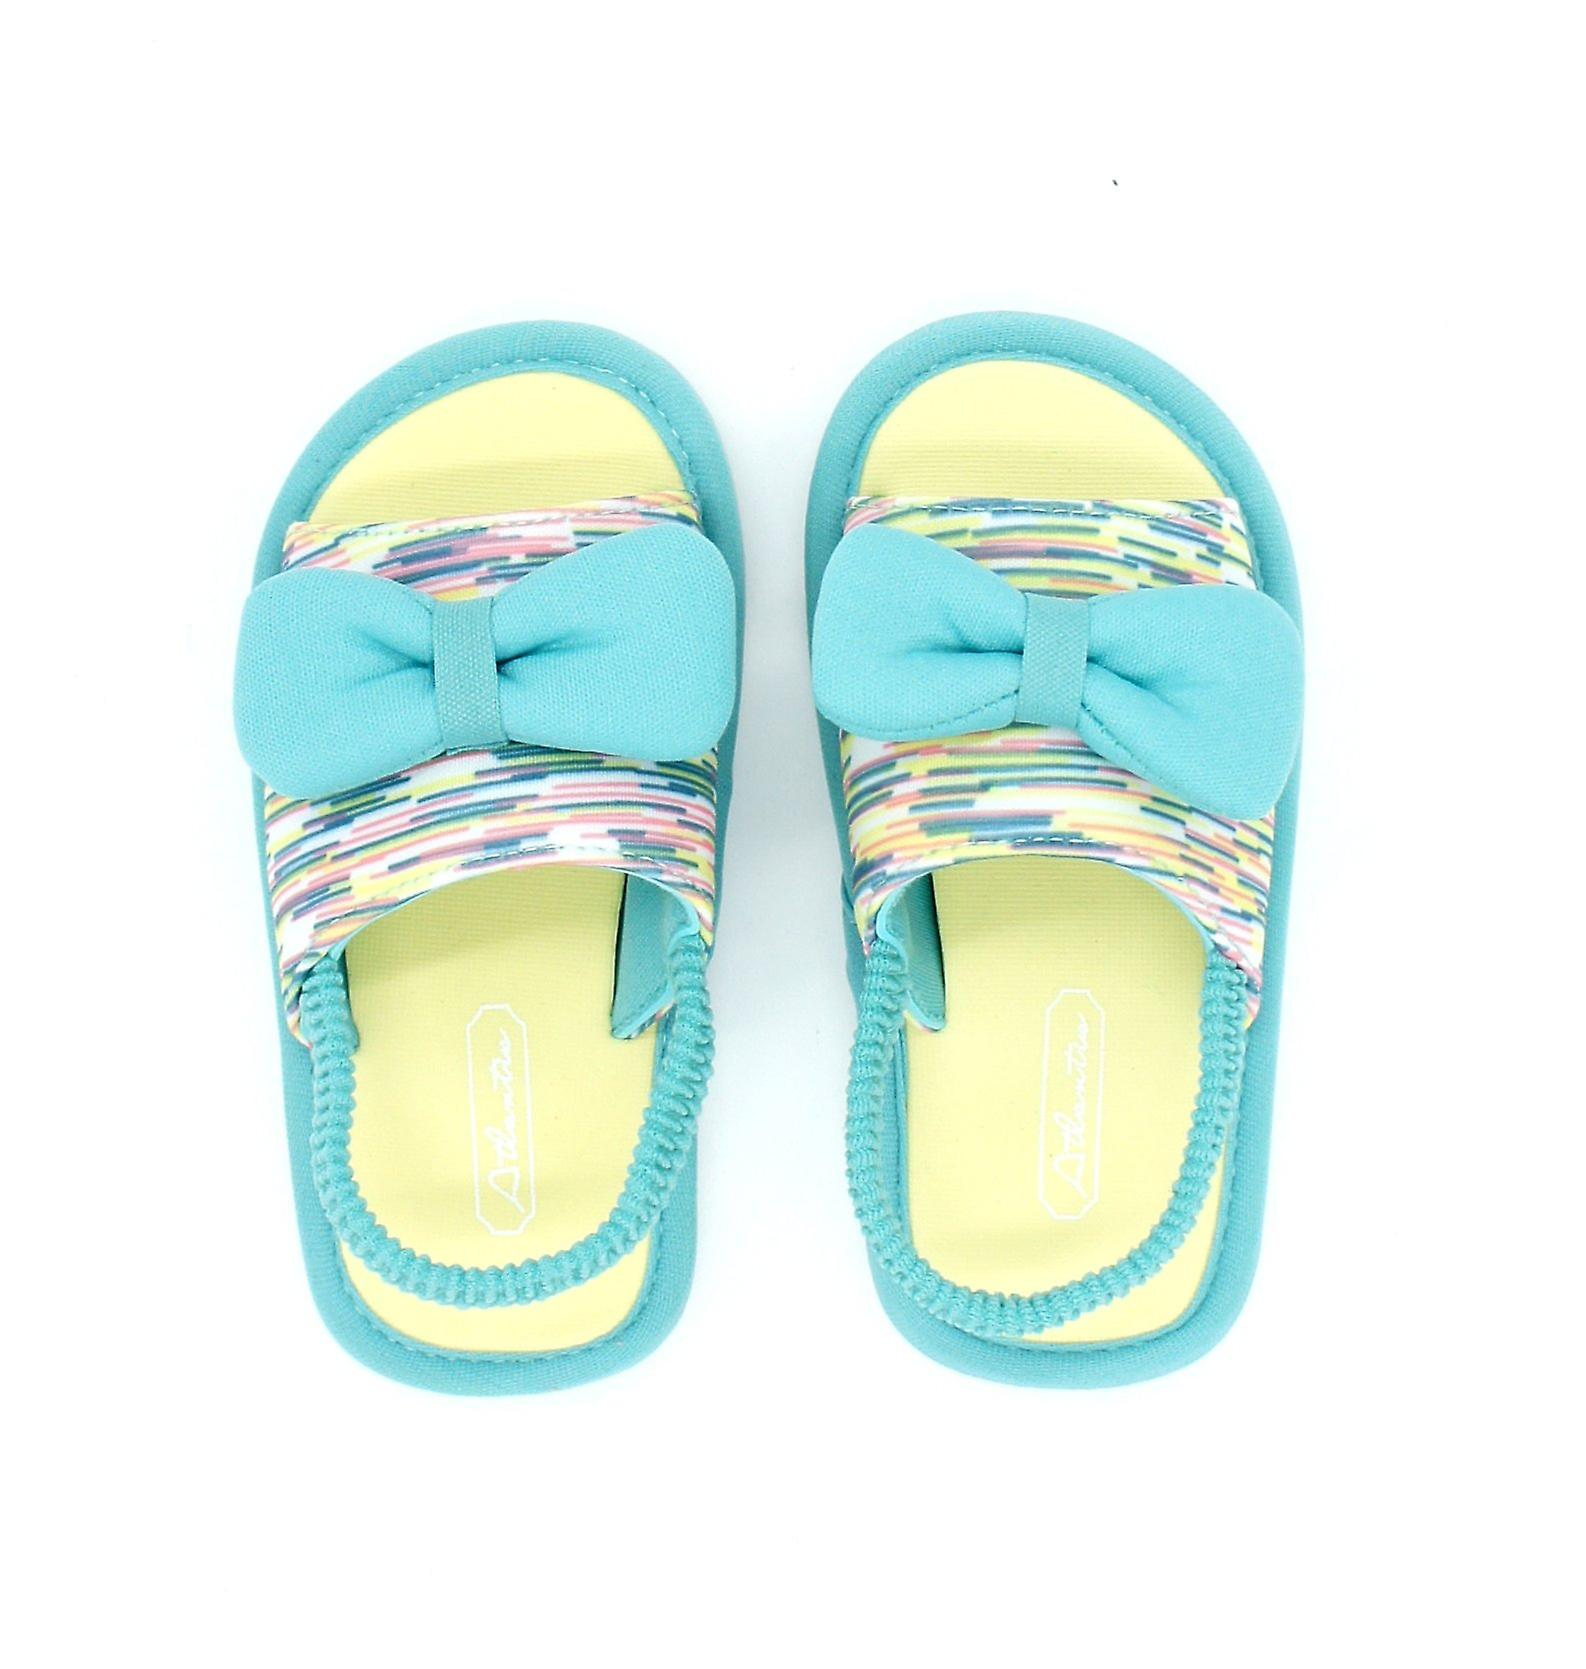 Atlantis Shoes Kids Girls Supportive Cushioned Comfortable Sandals Butterfly Turquoise